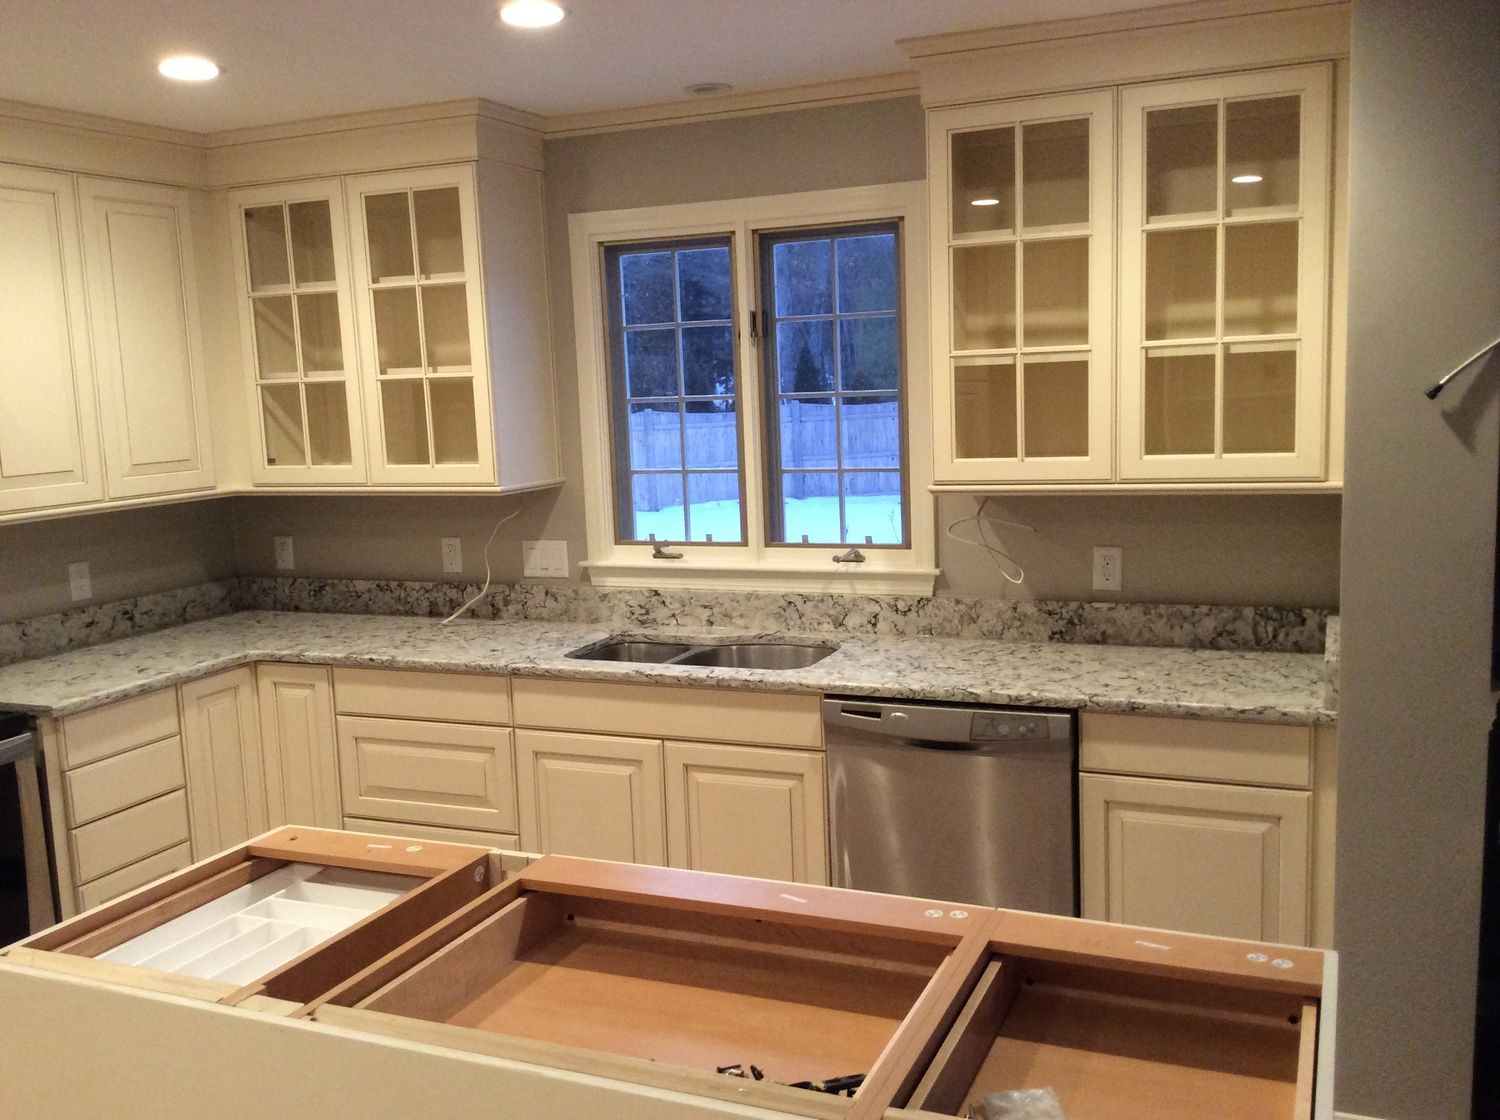 cambria u201cpraa sandsu201d quartz countertop blends well with the brookhaven cabinets in antique